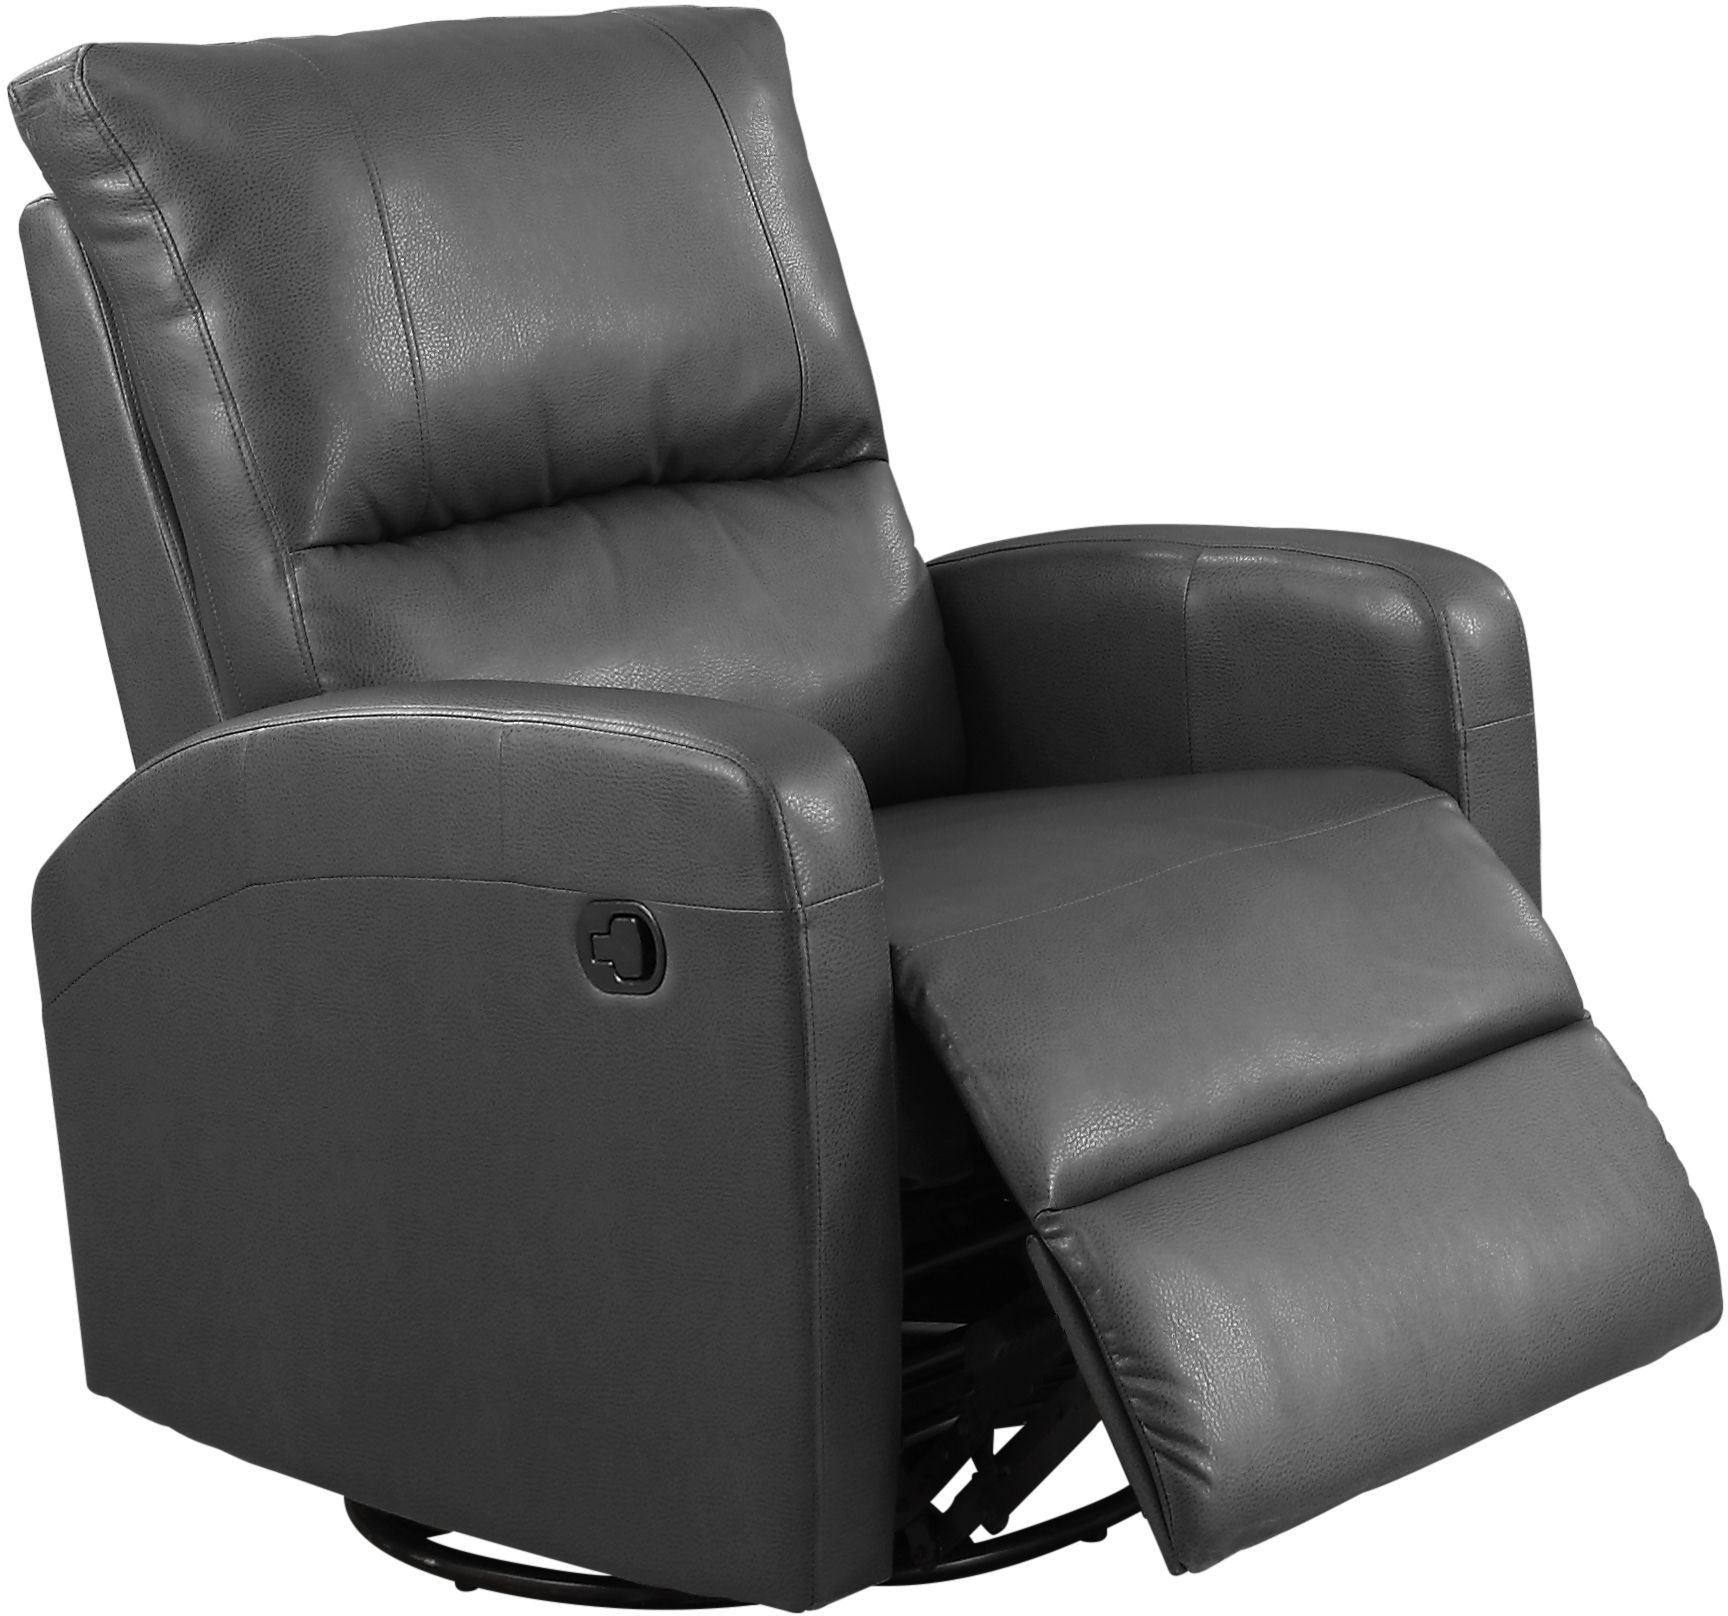 8084gy Charcoal Gray Bonded Leather Swivel Glider Recliner